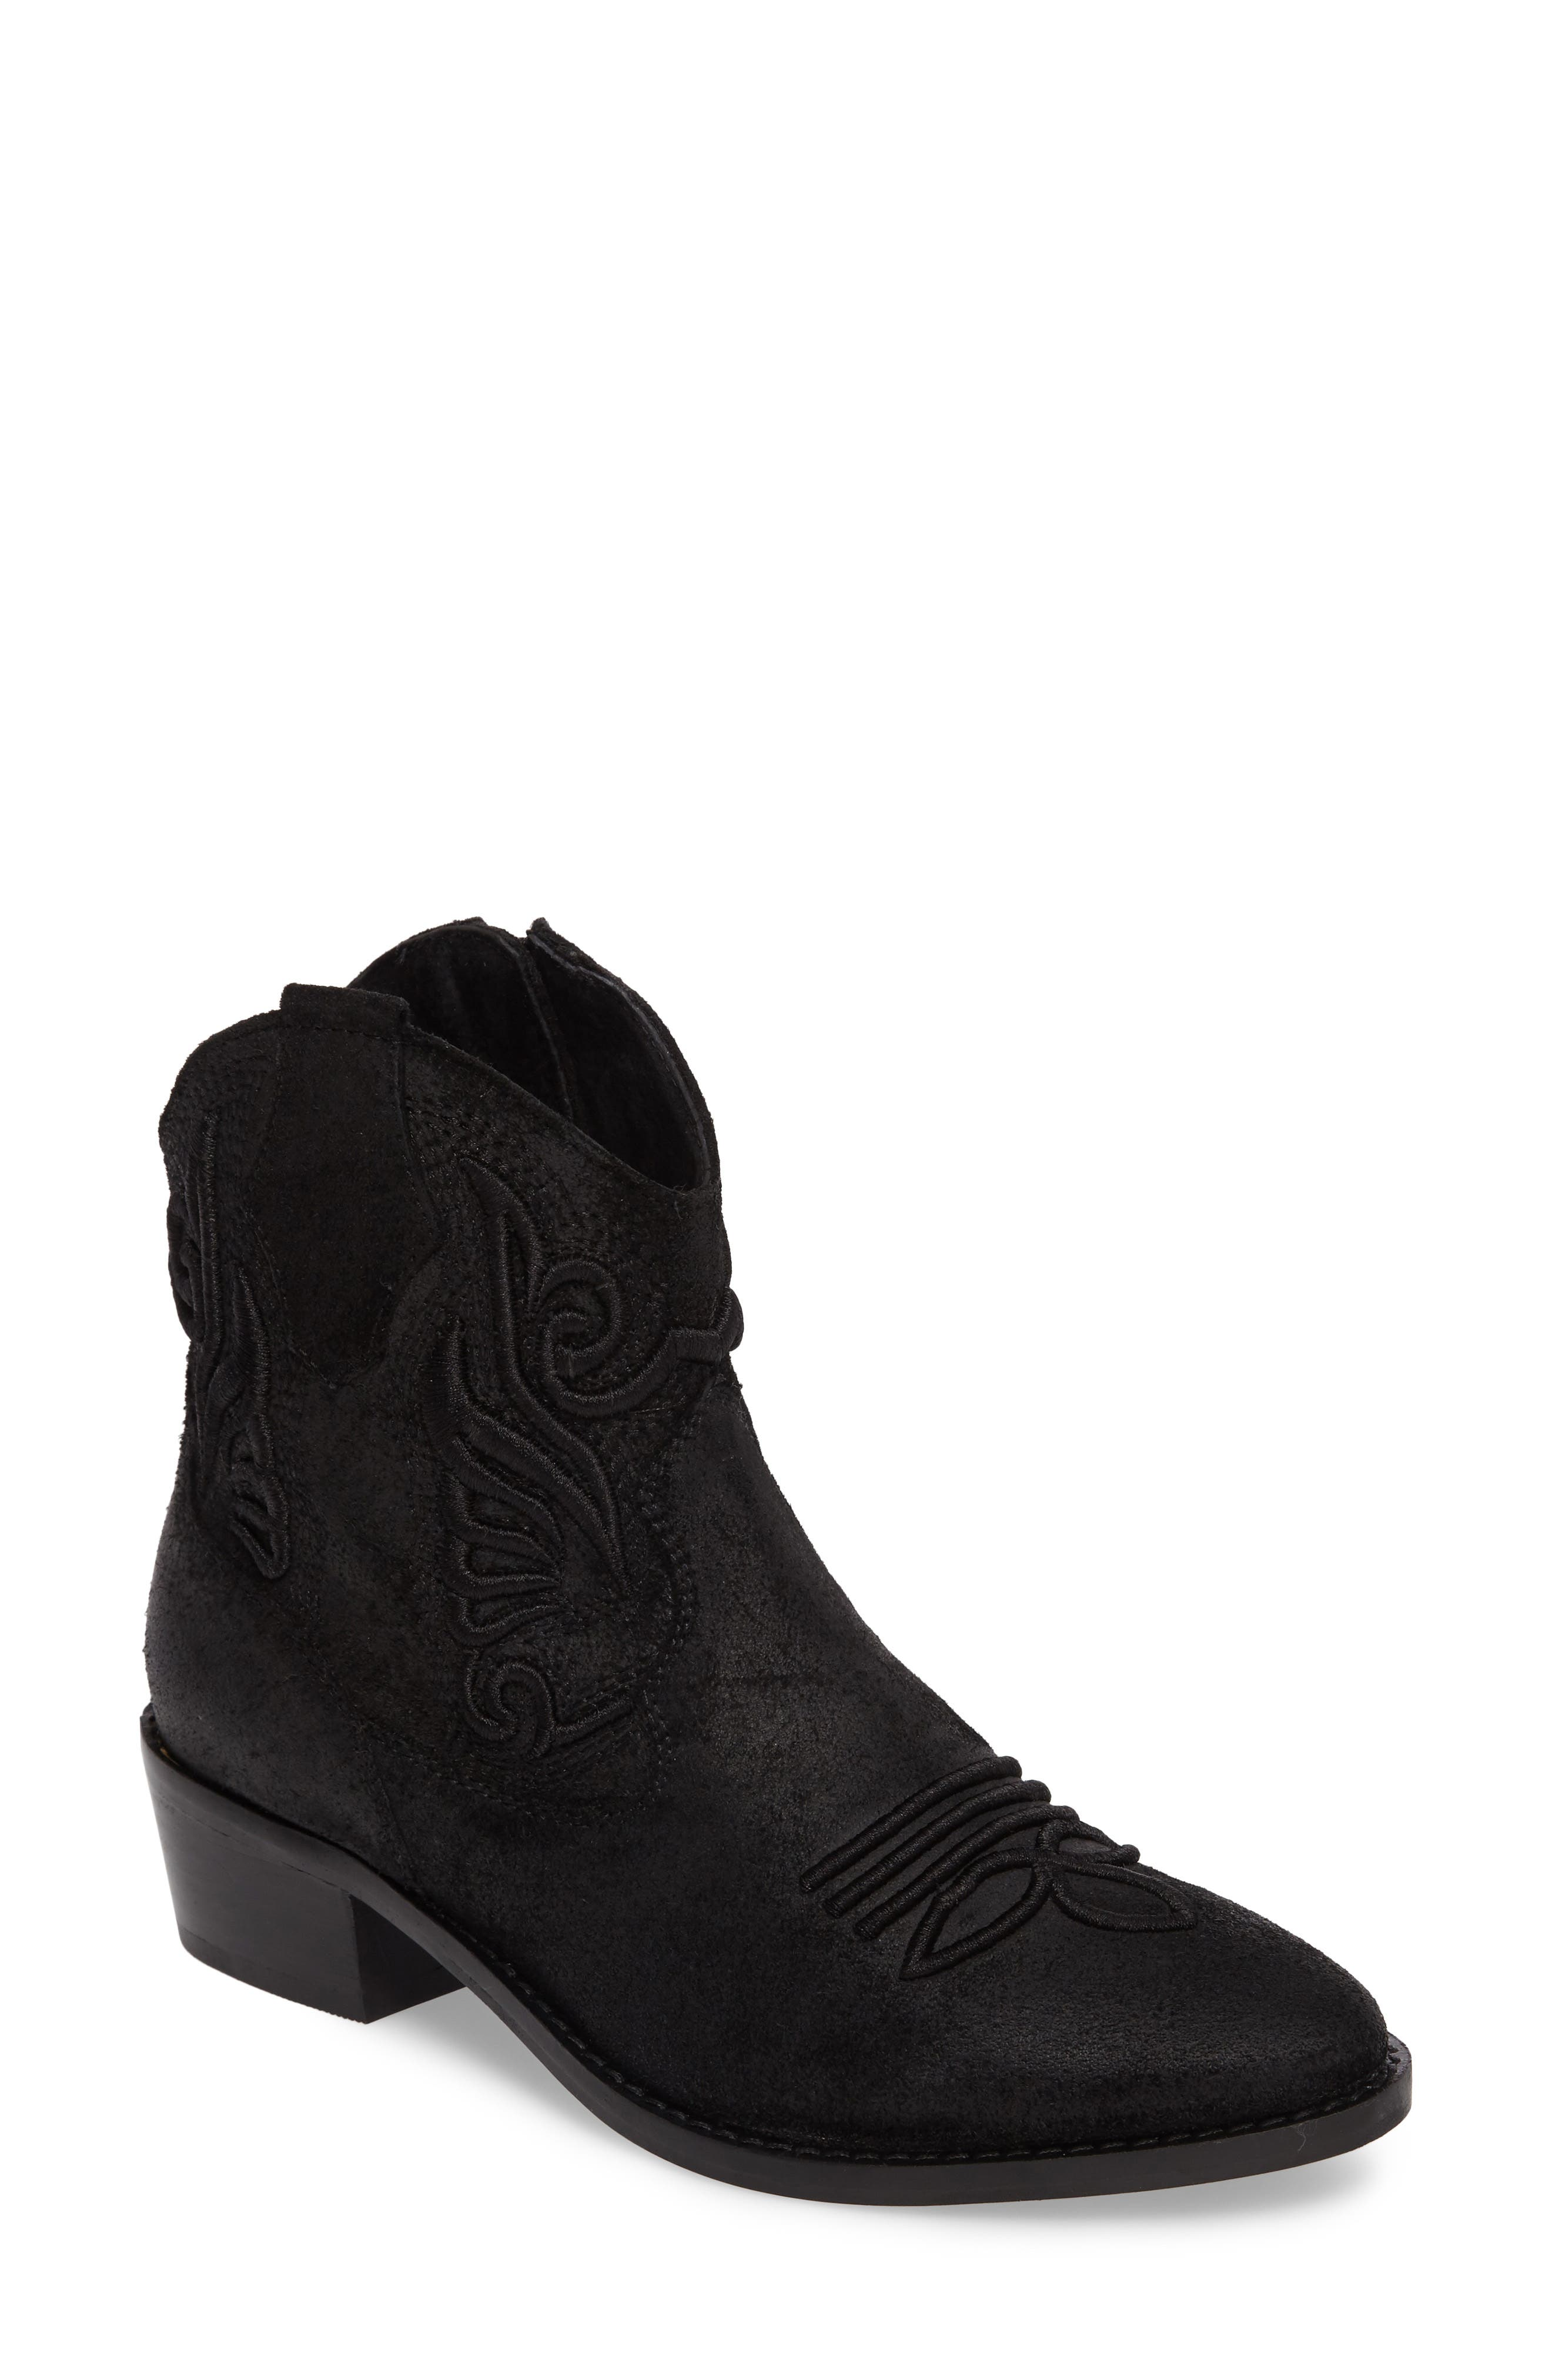 Apple Crumble Embroidered Bootie,                             Main thumbnail 1, color,                             001